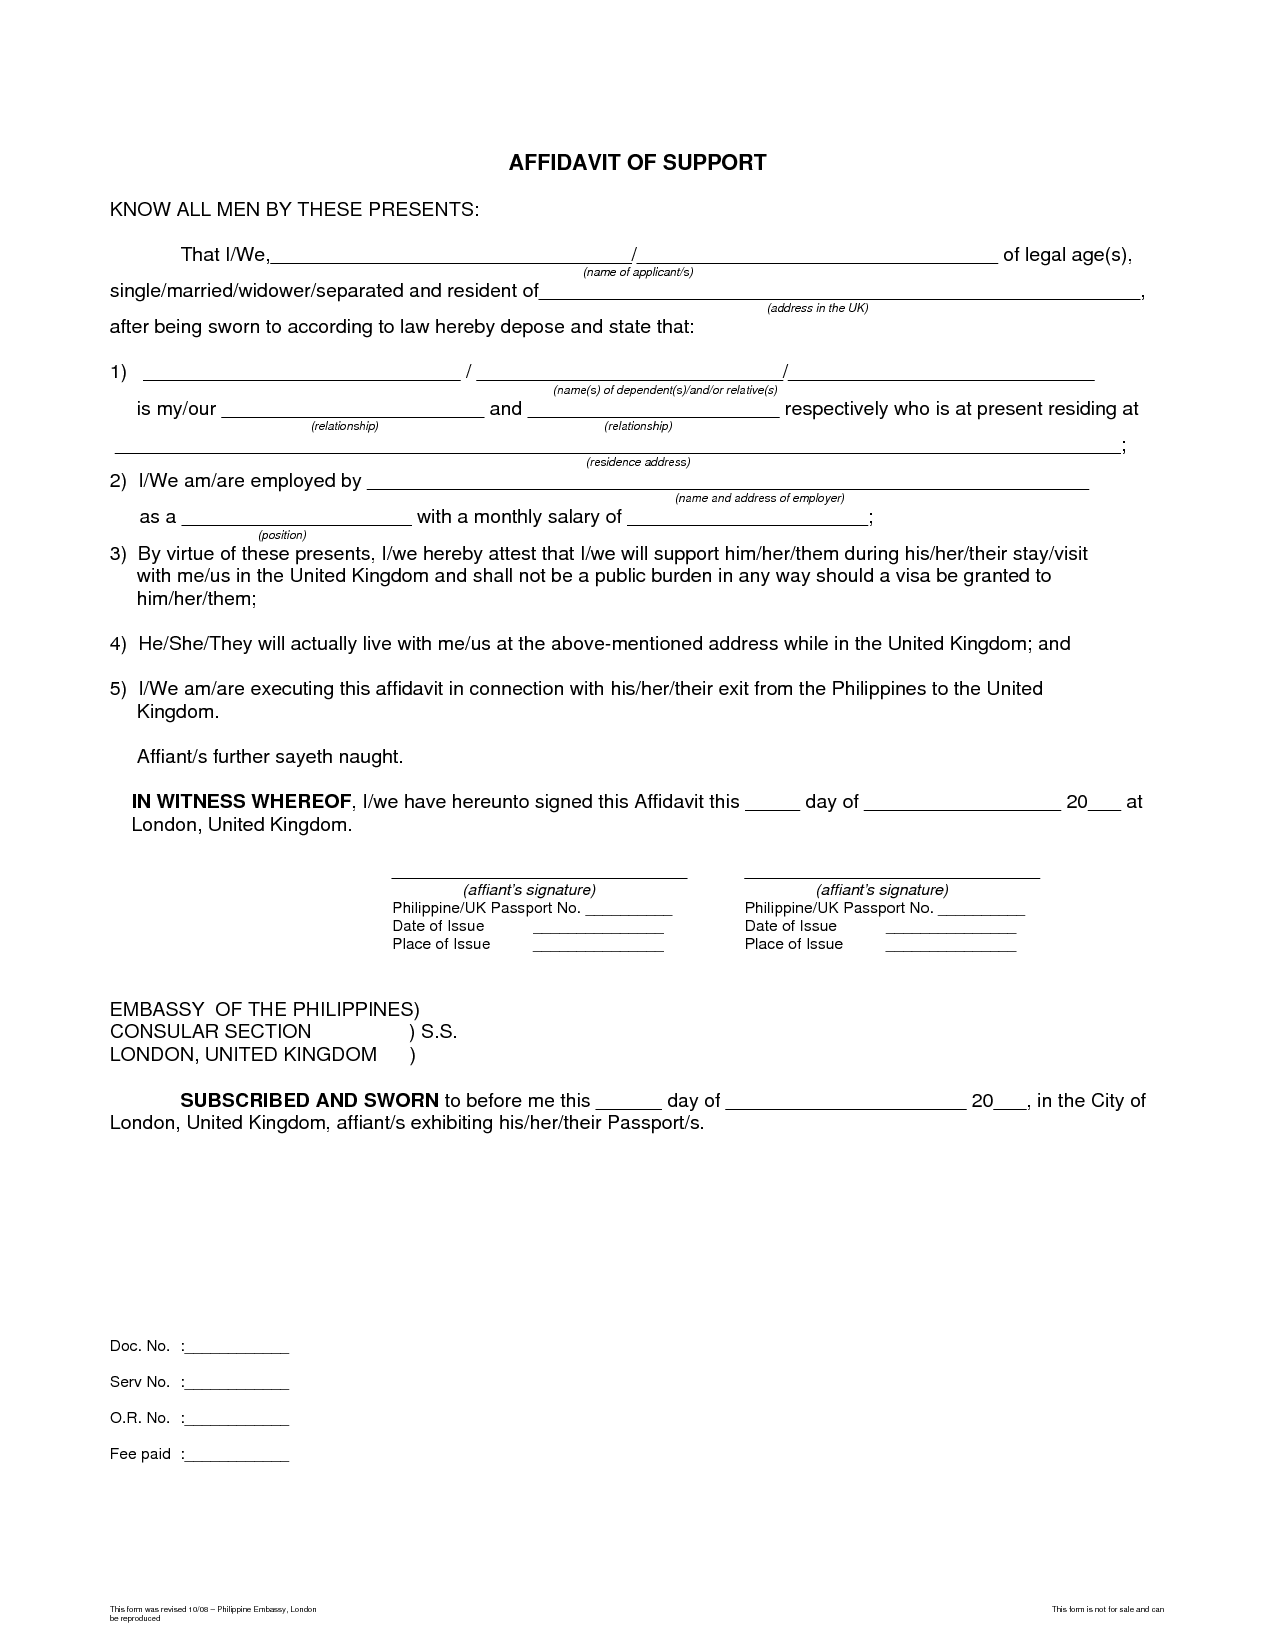 Affidavit Bagnas affidavit of support sample – Printable Affidavit Form